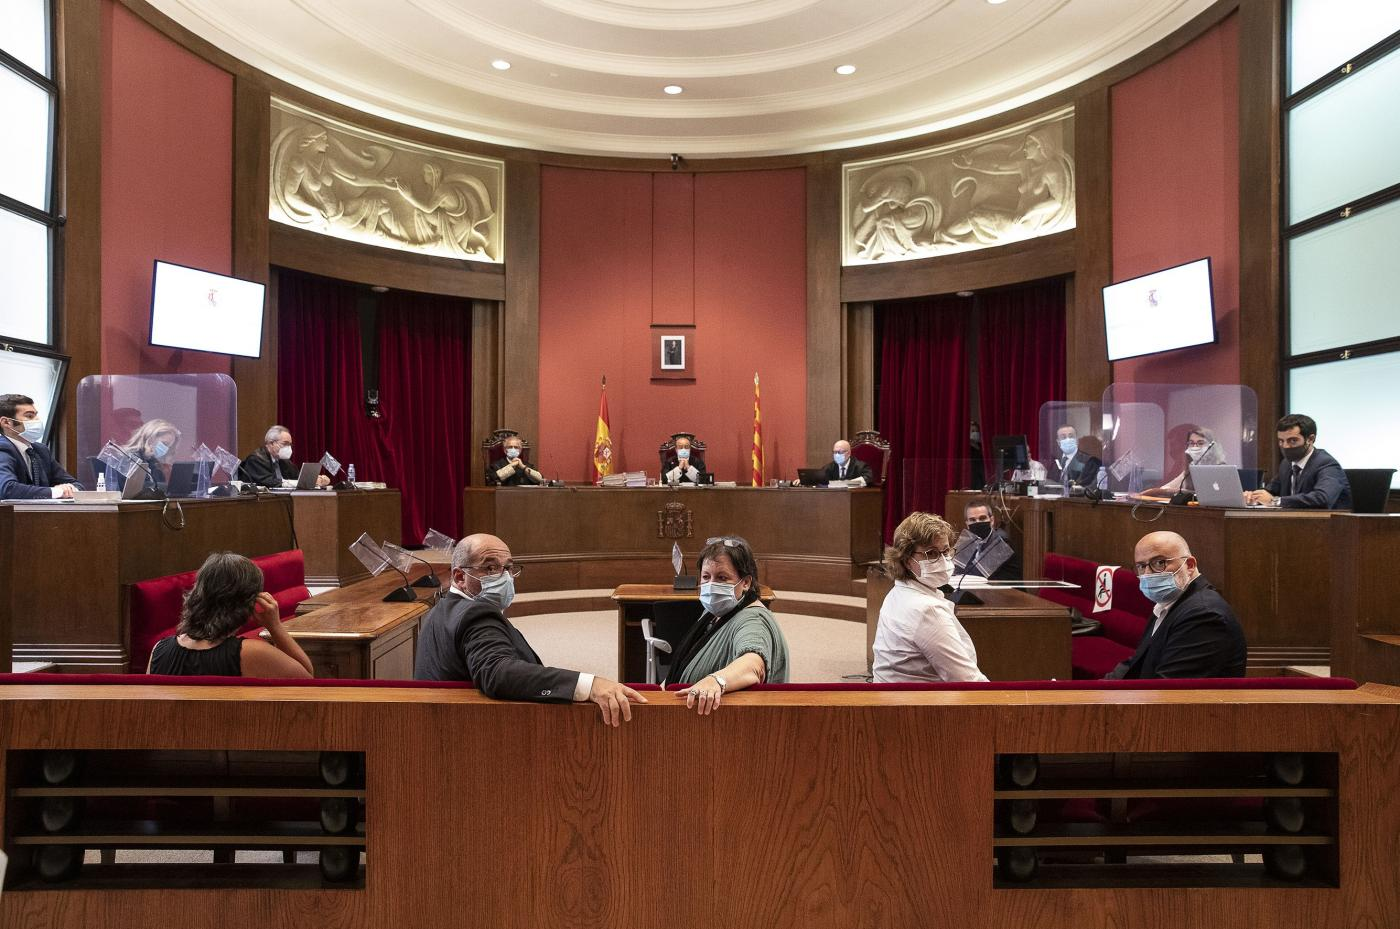 Juicio en el Tribunal Superior de Justicia de Catalunya. Europa Press